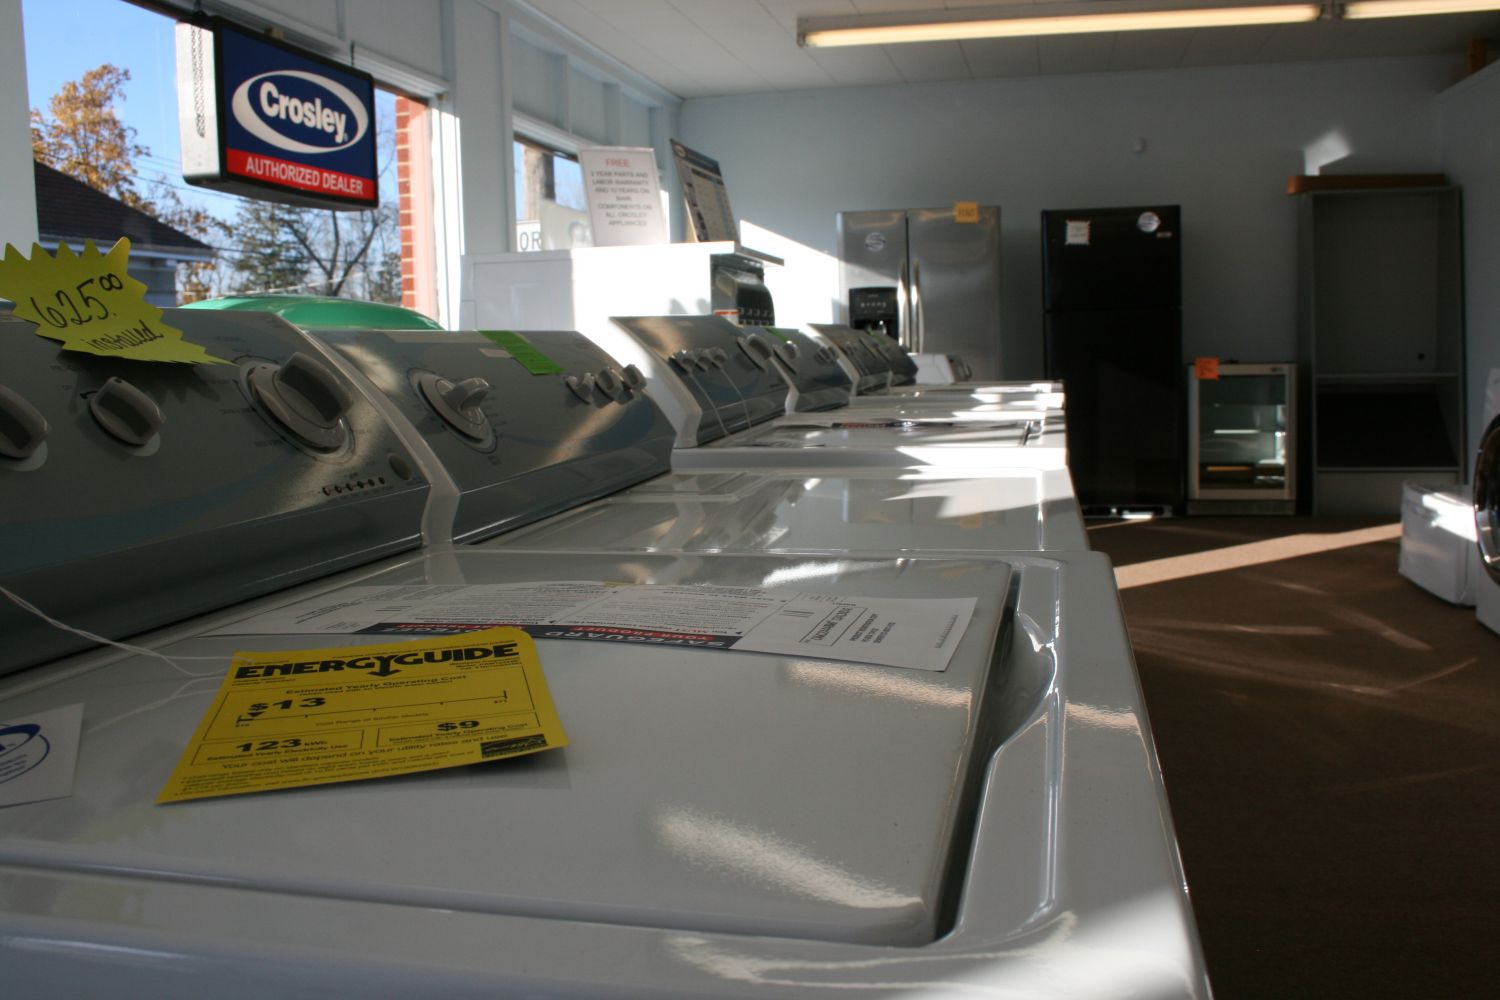 Washing machine and the best choice for appliance sales in Twinsburg, OH